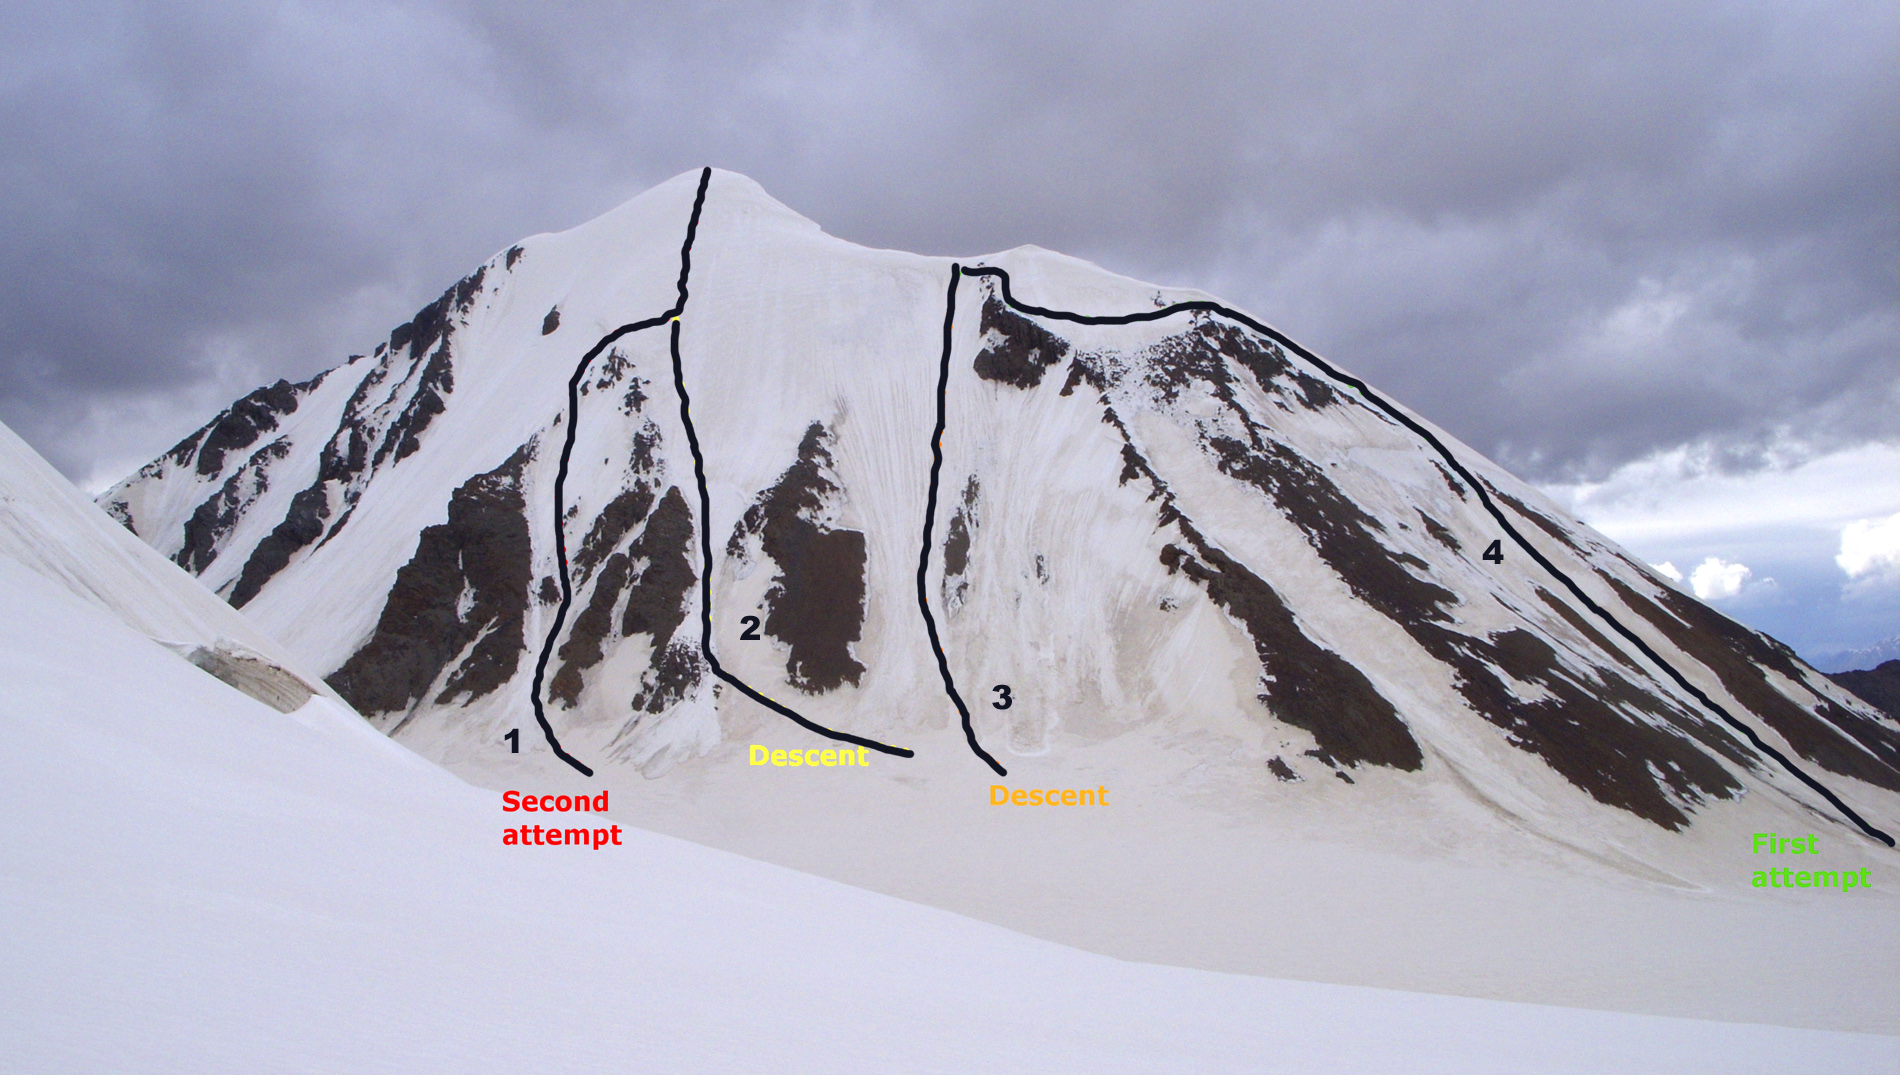 Night Butterfly from the south, showing (1) south face ascent and (2) descent. (3) is the descent used after the failed attempt (4) by the east ridge.